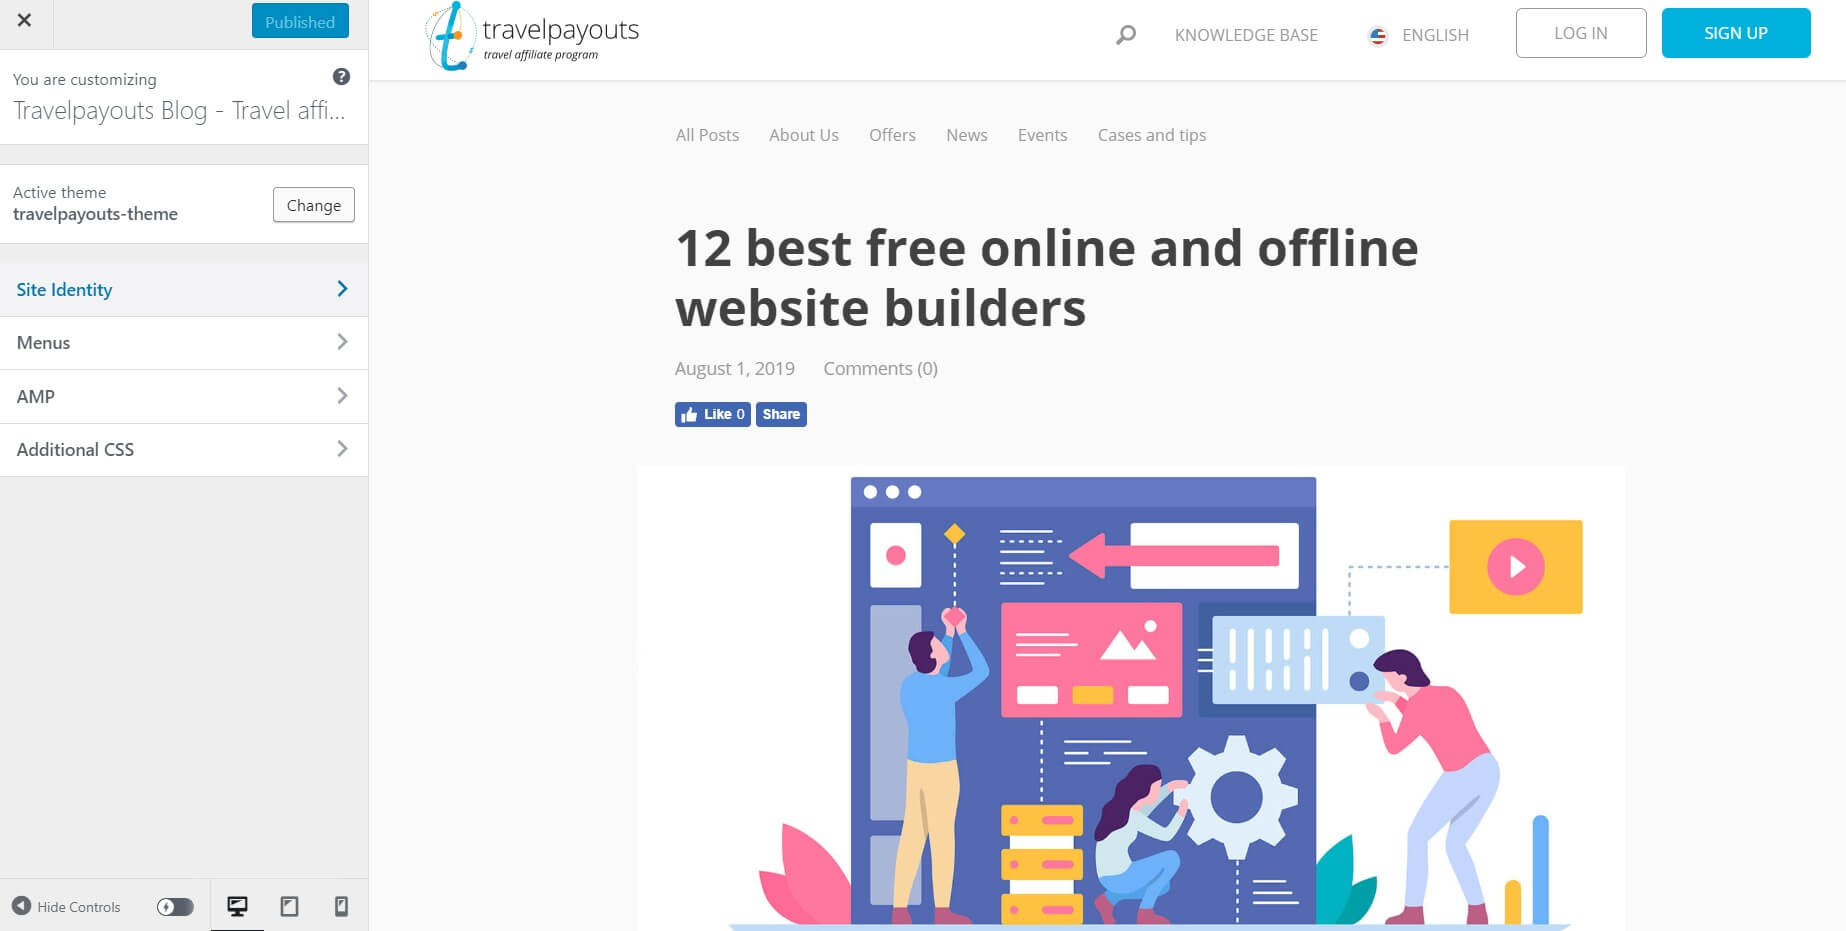 12 best free online and offline website builders